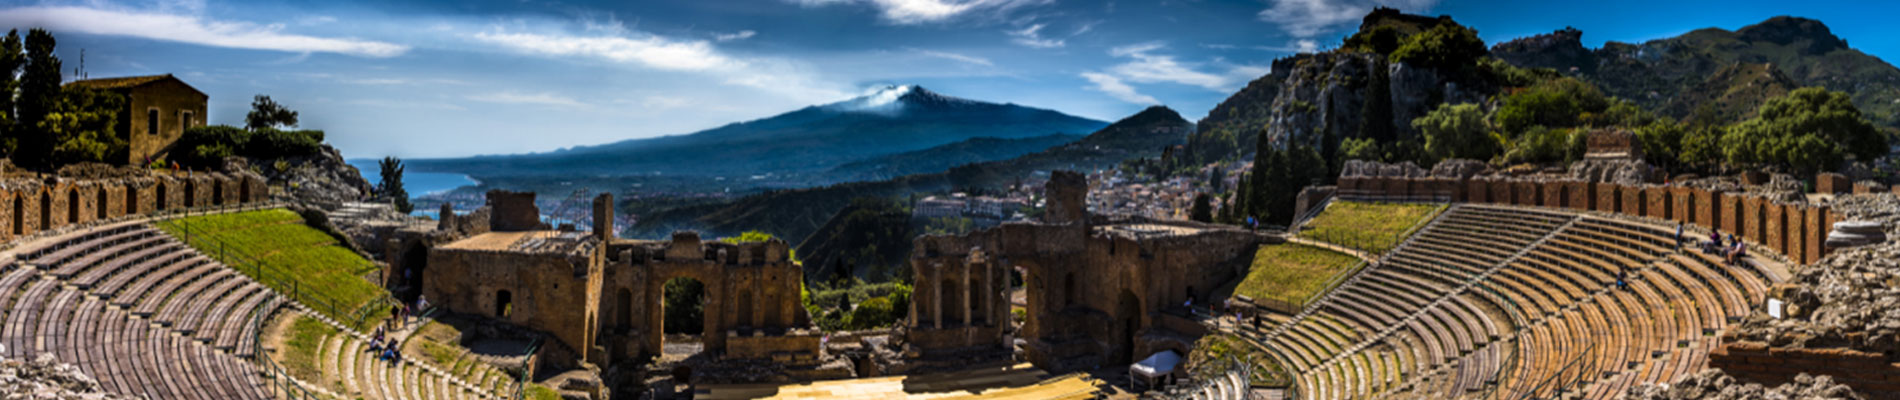 What I most enjoyed about the Sicily webinar is that it was very personal – from a local perspective. Getting insider tips on where to go, what to see, where to eat is invaluable<br>– Peter Carideo, President, CRC Travel